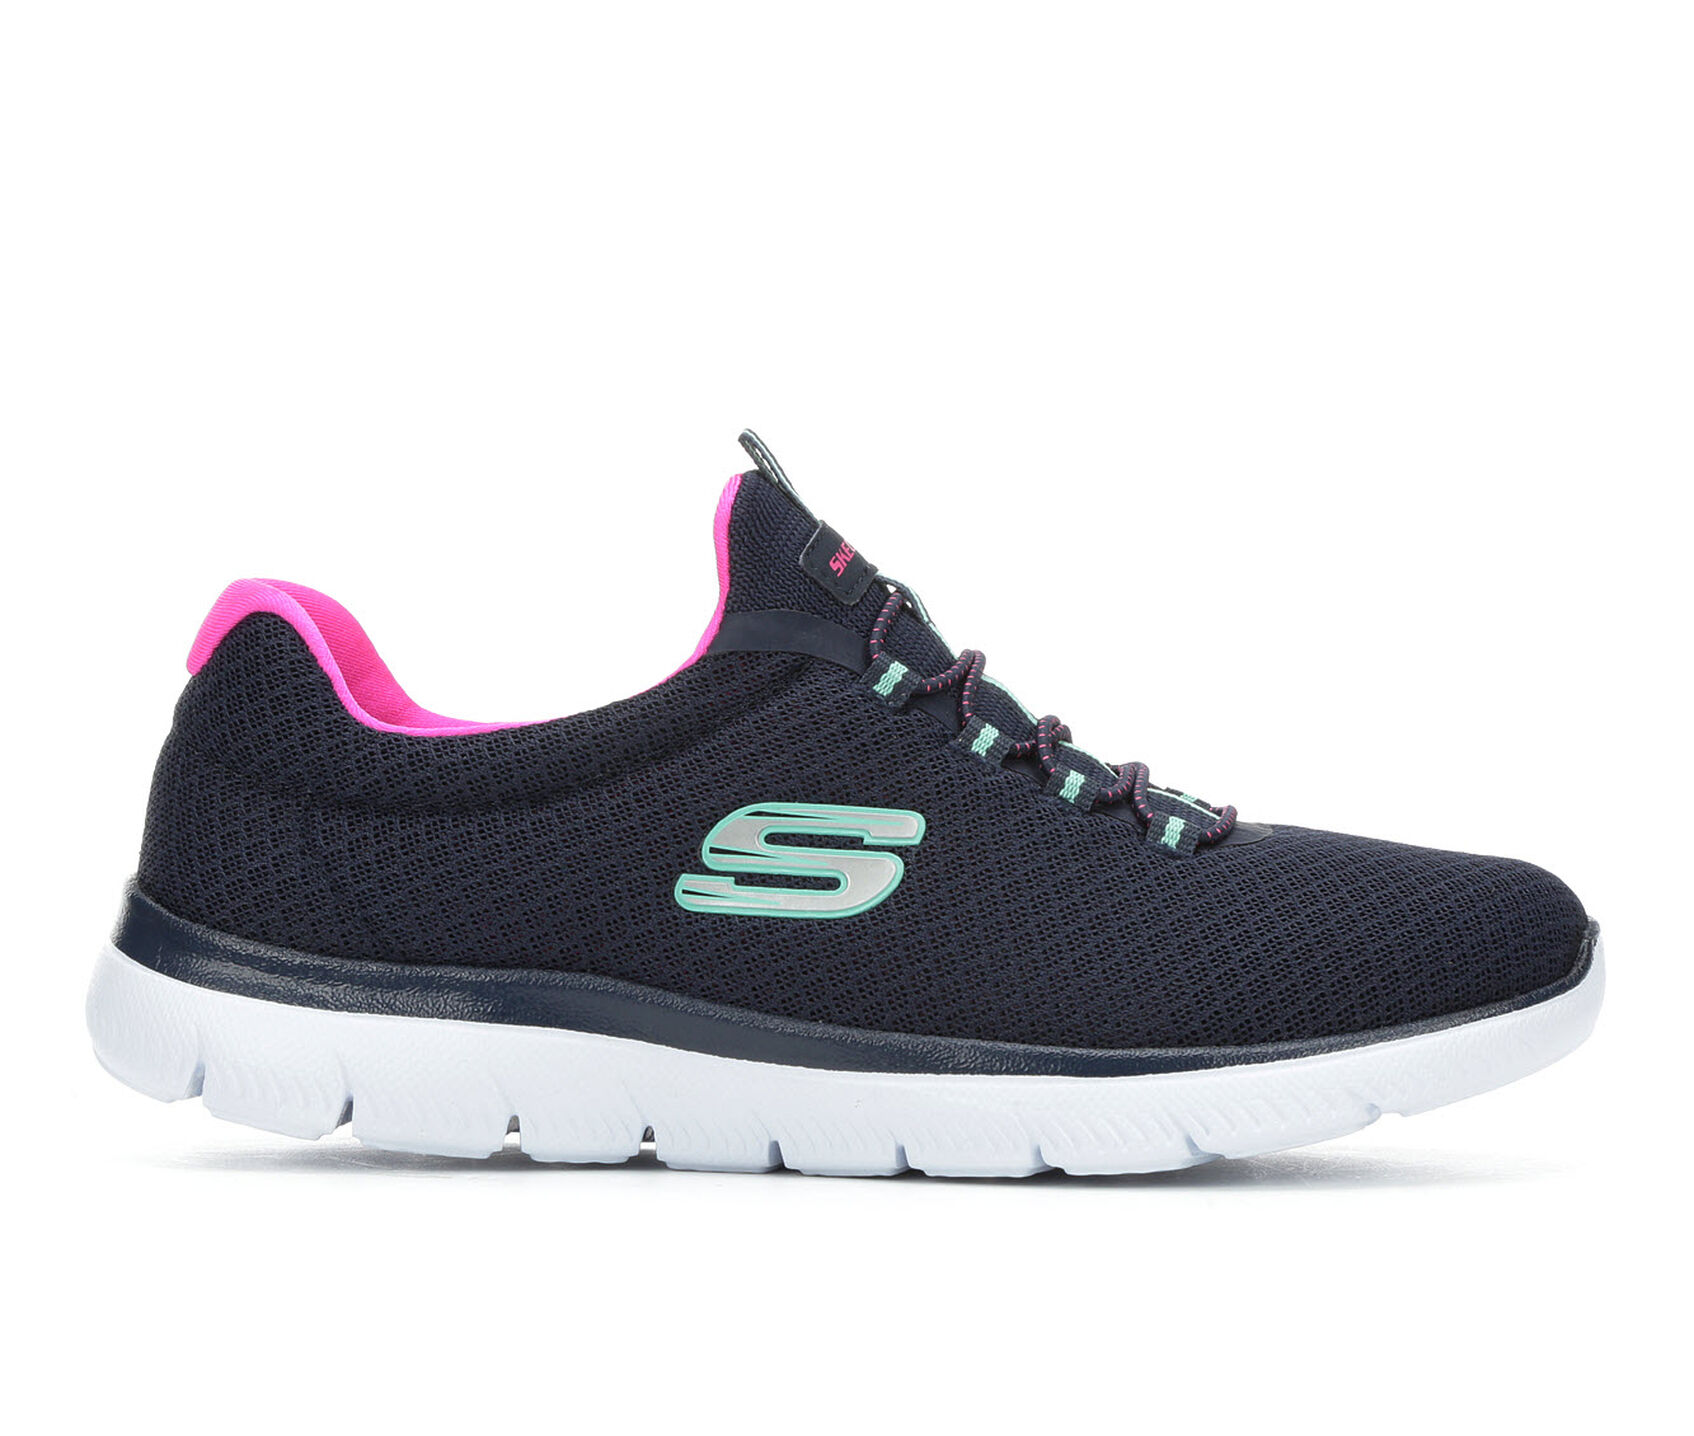 6182800b14 Women's Skechers Summits 12980 Slip-On Sneakers | Shoe Carnival